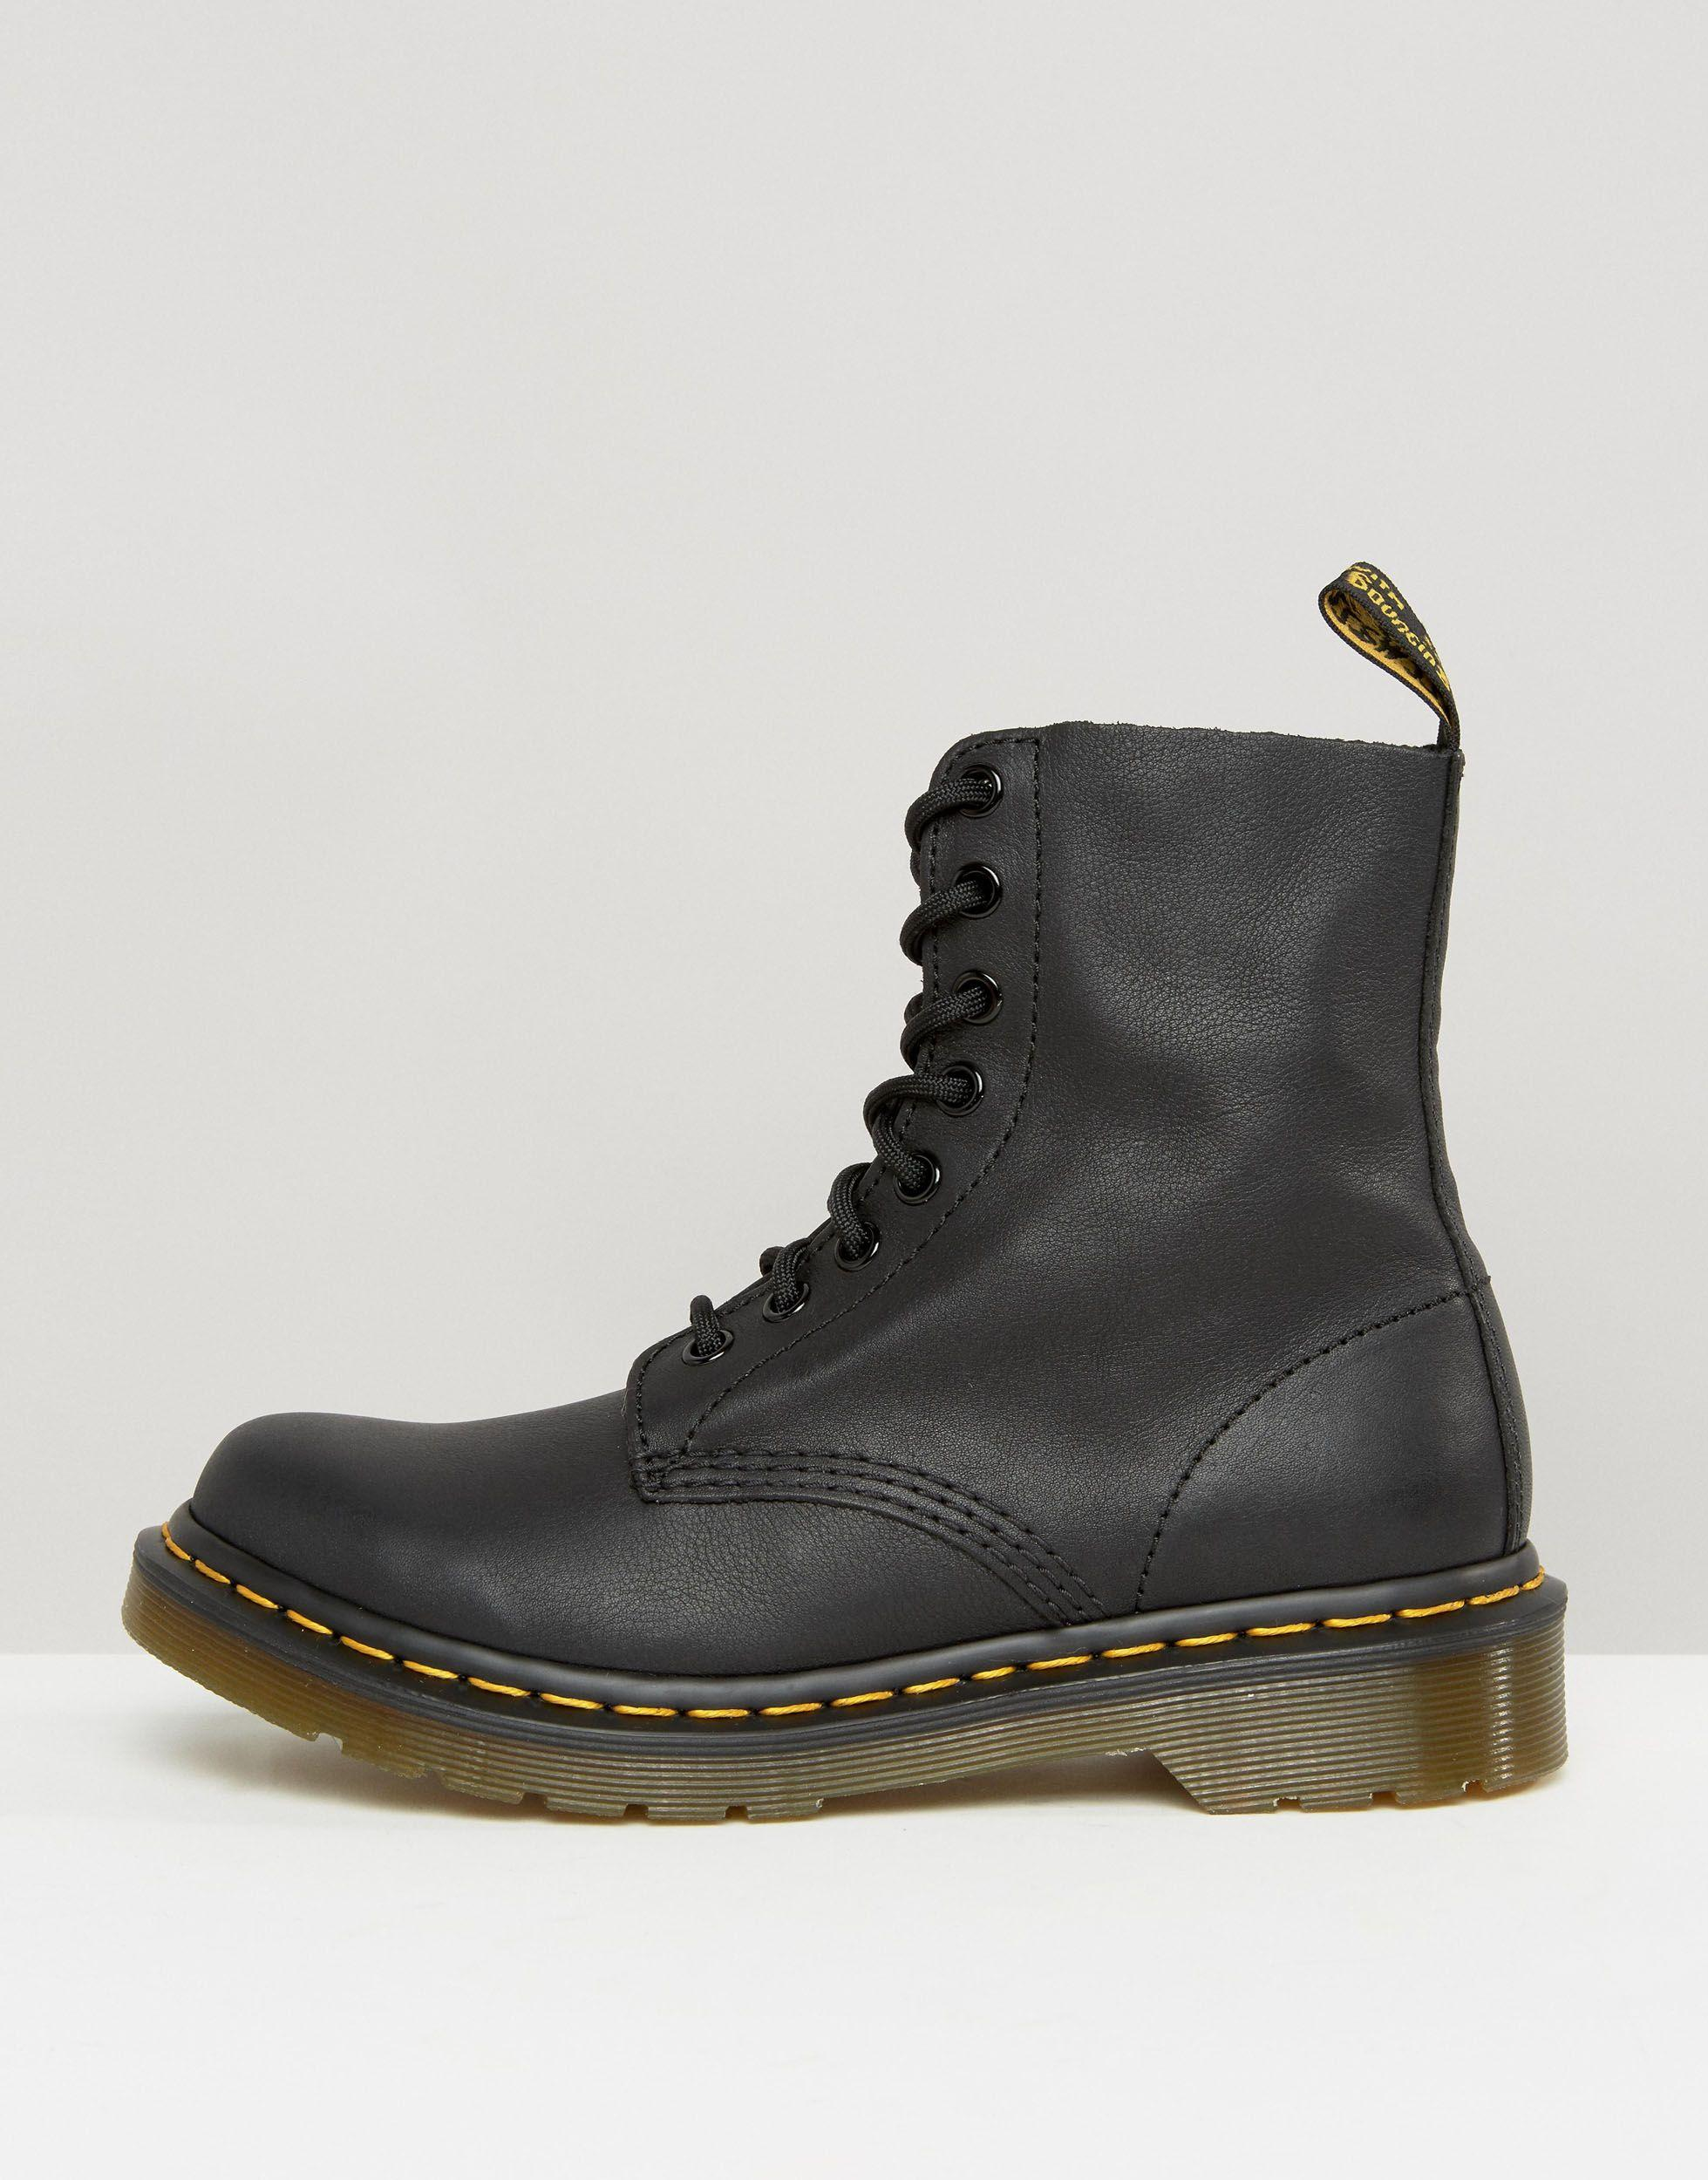 Dr. Martens 1460 Pascal 8 Eye Boots in Black